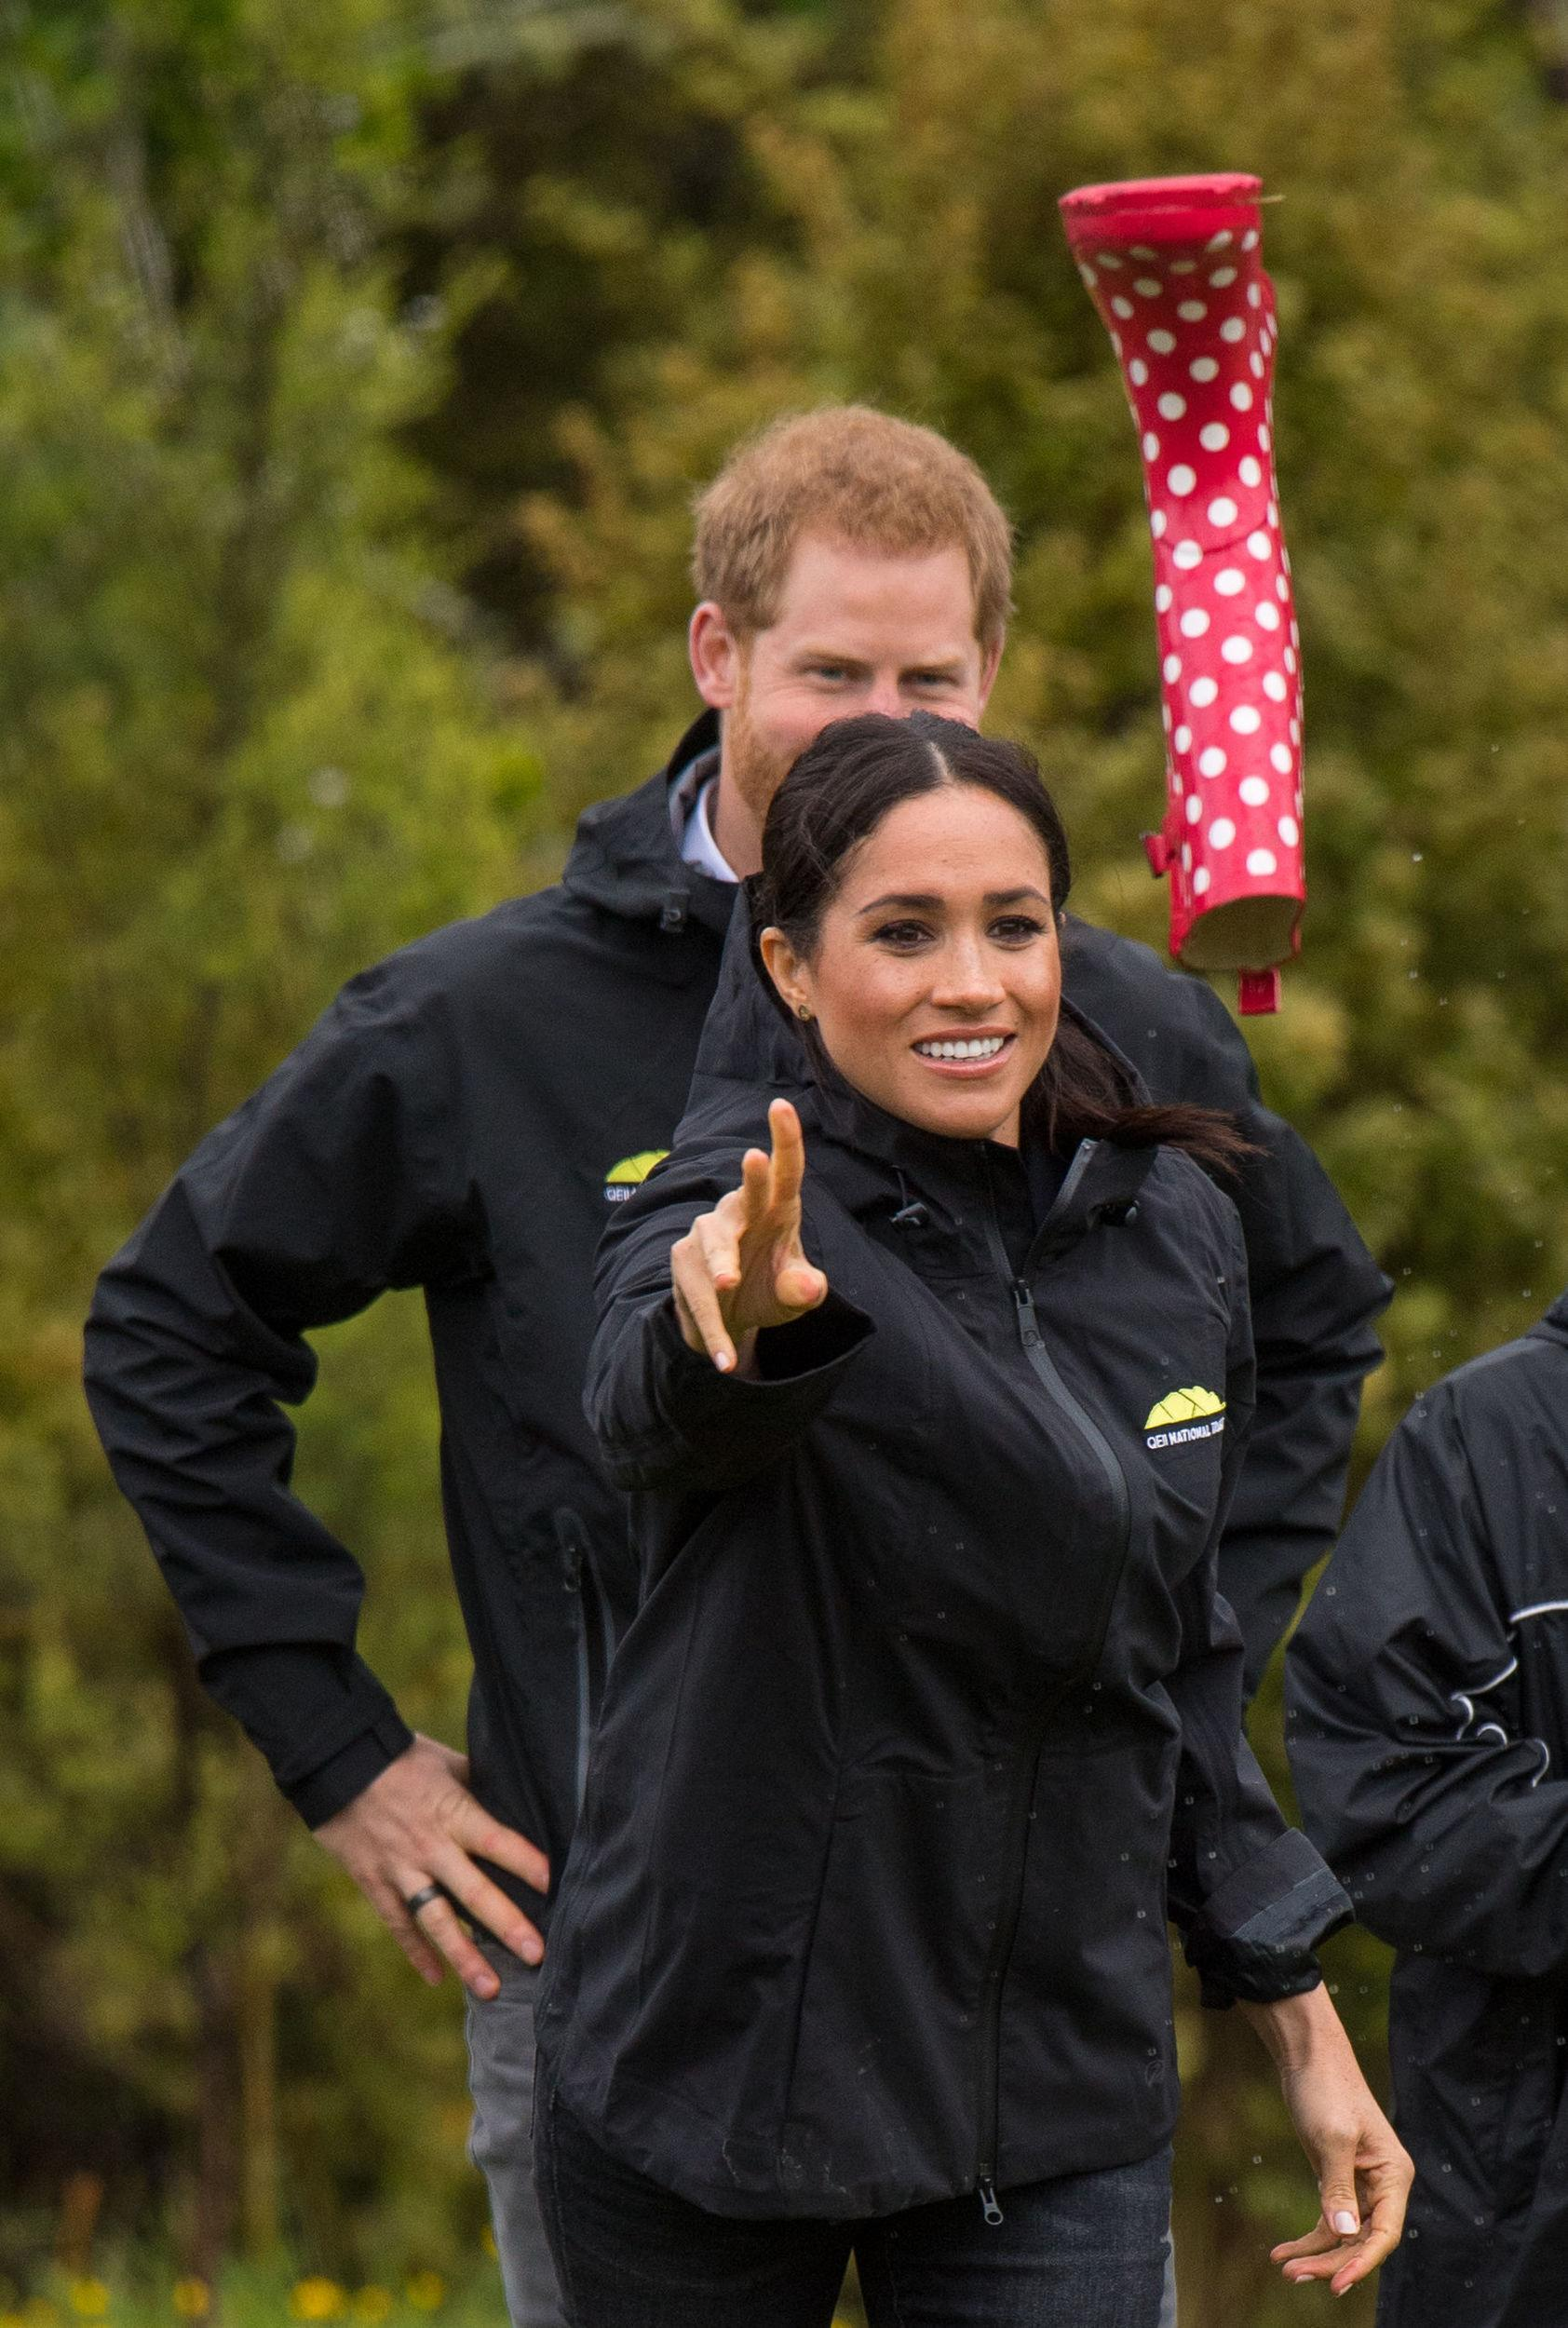 The Duchess of Sussex takes part in a welly wanging contest following a dedication of an area of bush to the Queen's Commonwealth Canopy, in Redvale on the North Shore, on day three of the royal couple's tour of New Zealand.